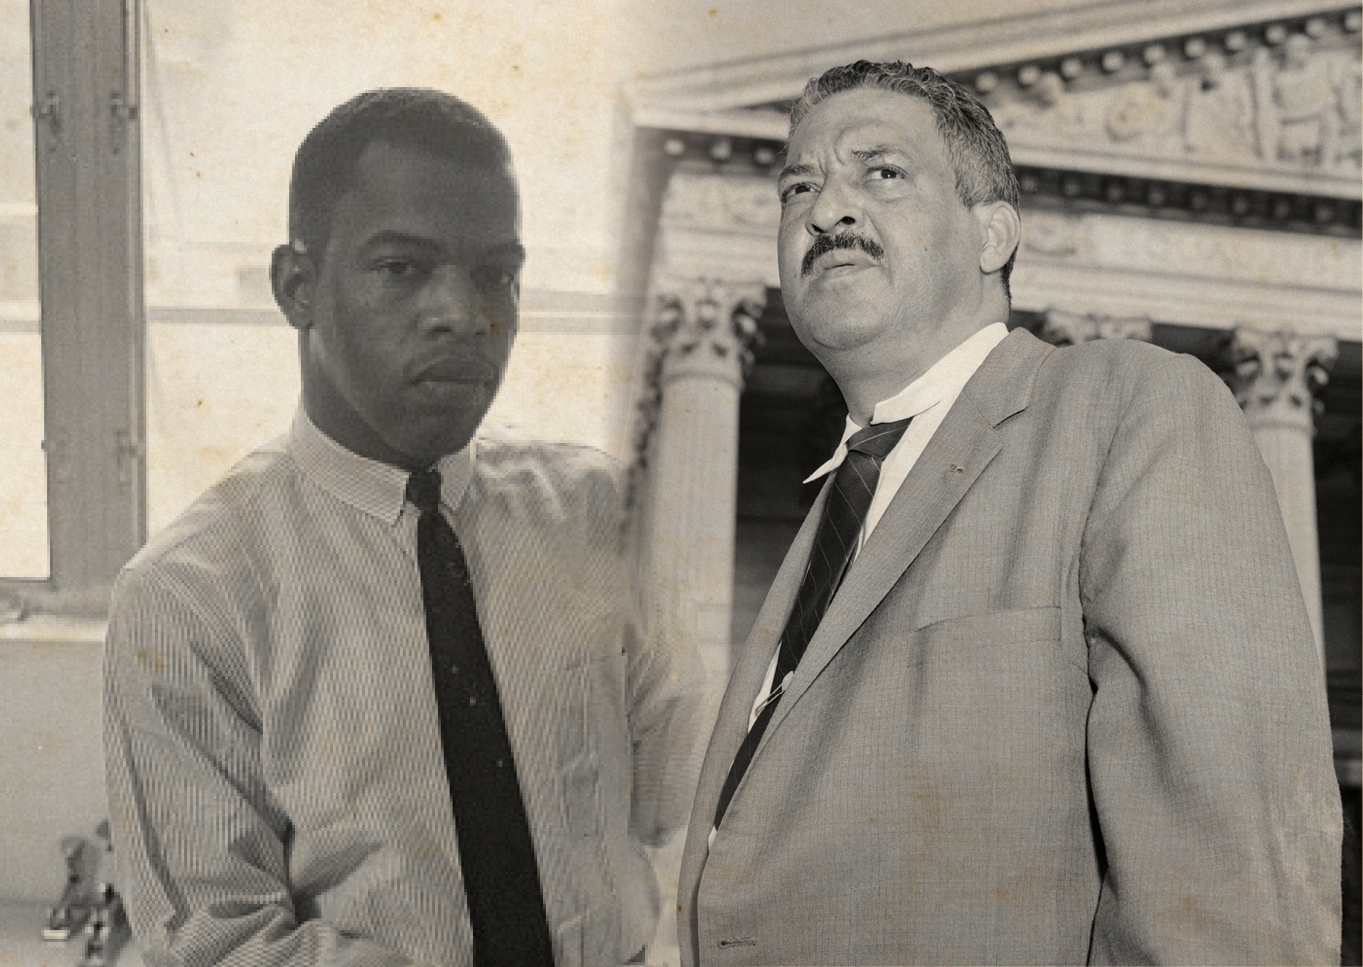 Joining Forces: Thurgood Marshall and John Lewis